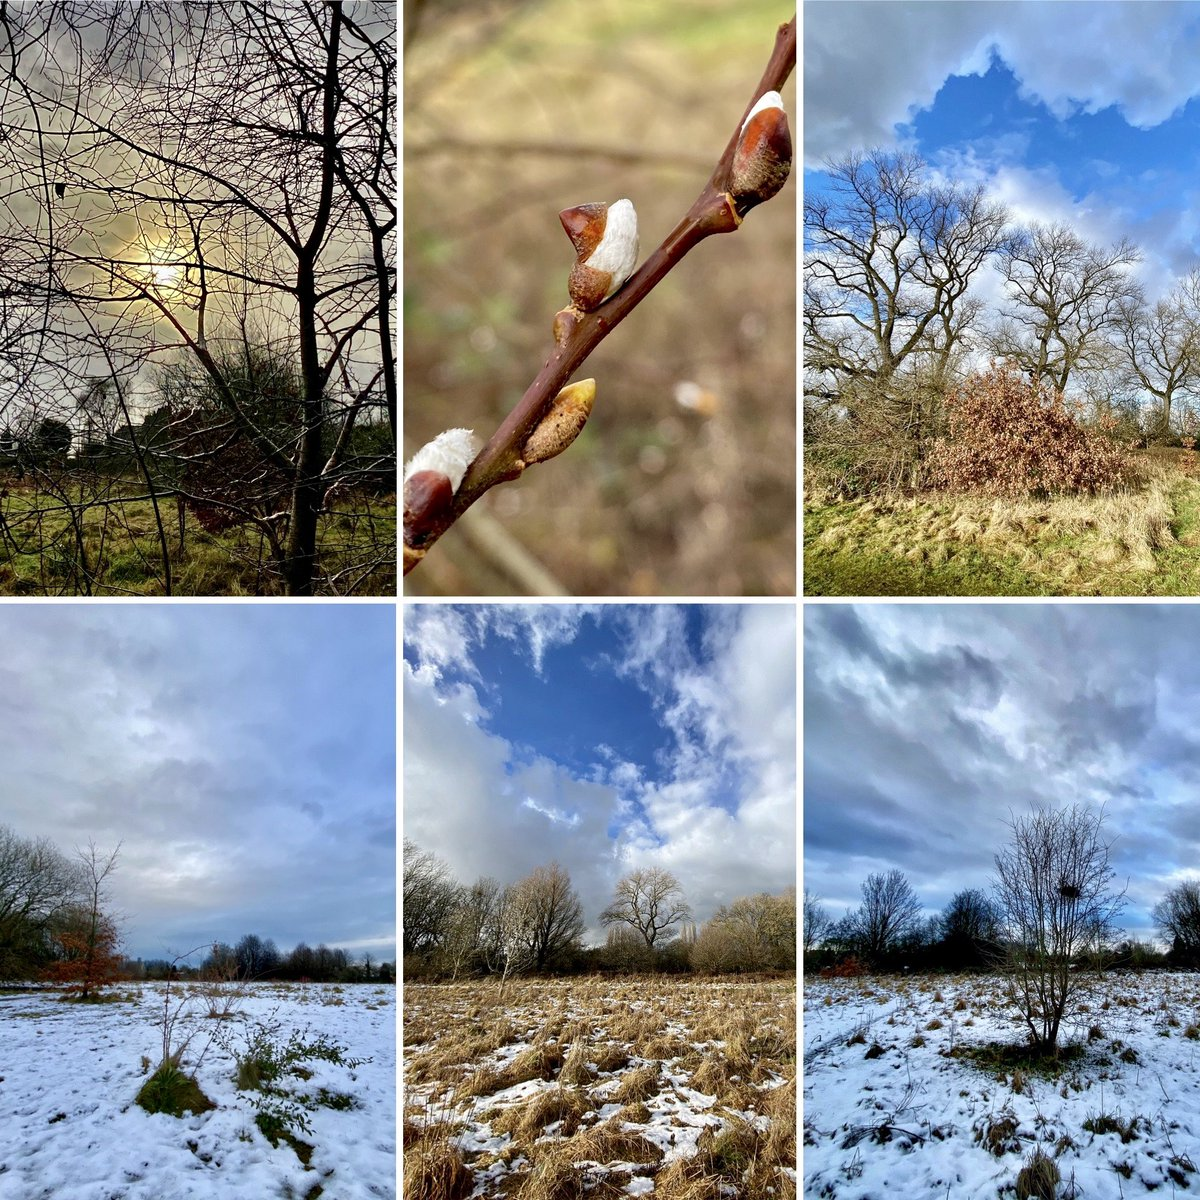 my #sixonsaturday #nature photos are from #urban wild land ( @ryebankfields ) in #manchester 100m from home. v mixed #weather this week ❄️☀️  #NaturePhotography #outdoors #beauty #TwitterNatureCommunity #saveryebankfields #wellbeing #wildlockdown #lockdown2021 #selfcare #StaySafe